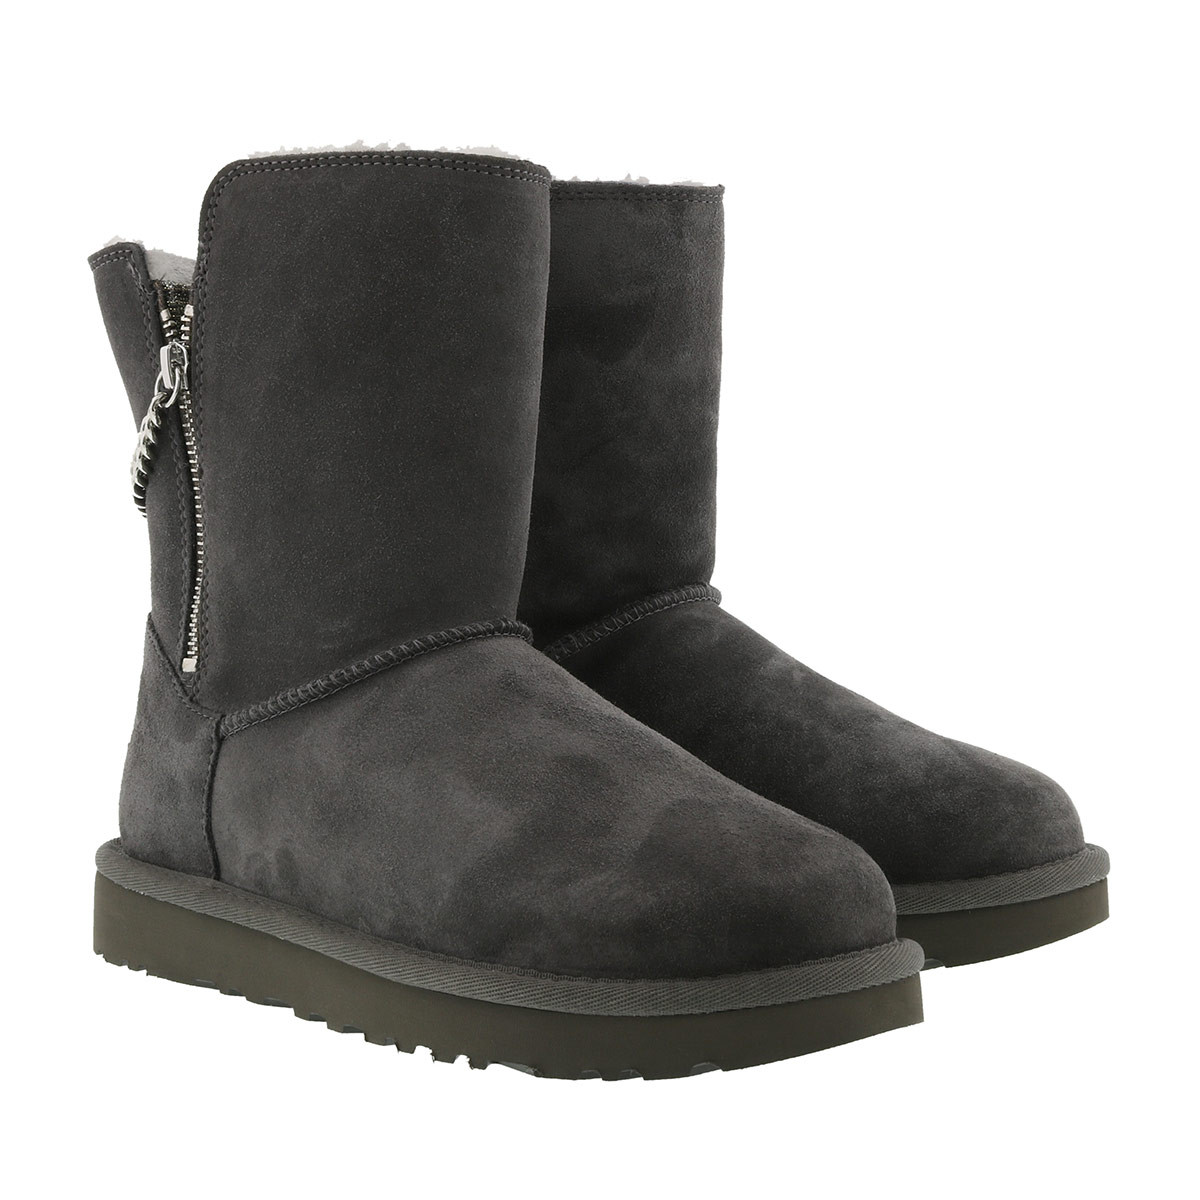 UGG Boots - W Classic Short Sparkle Zip Charcoal - in grau - für Damen